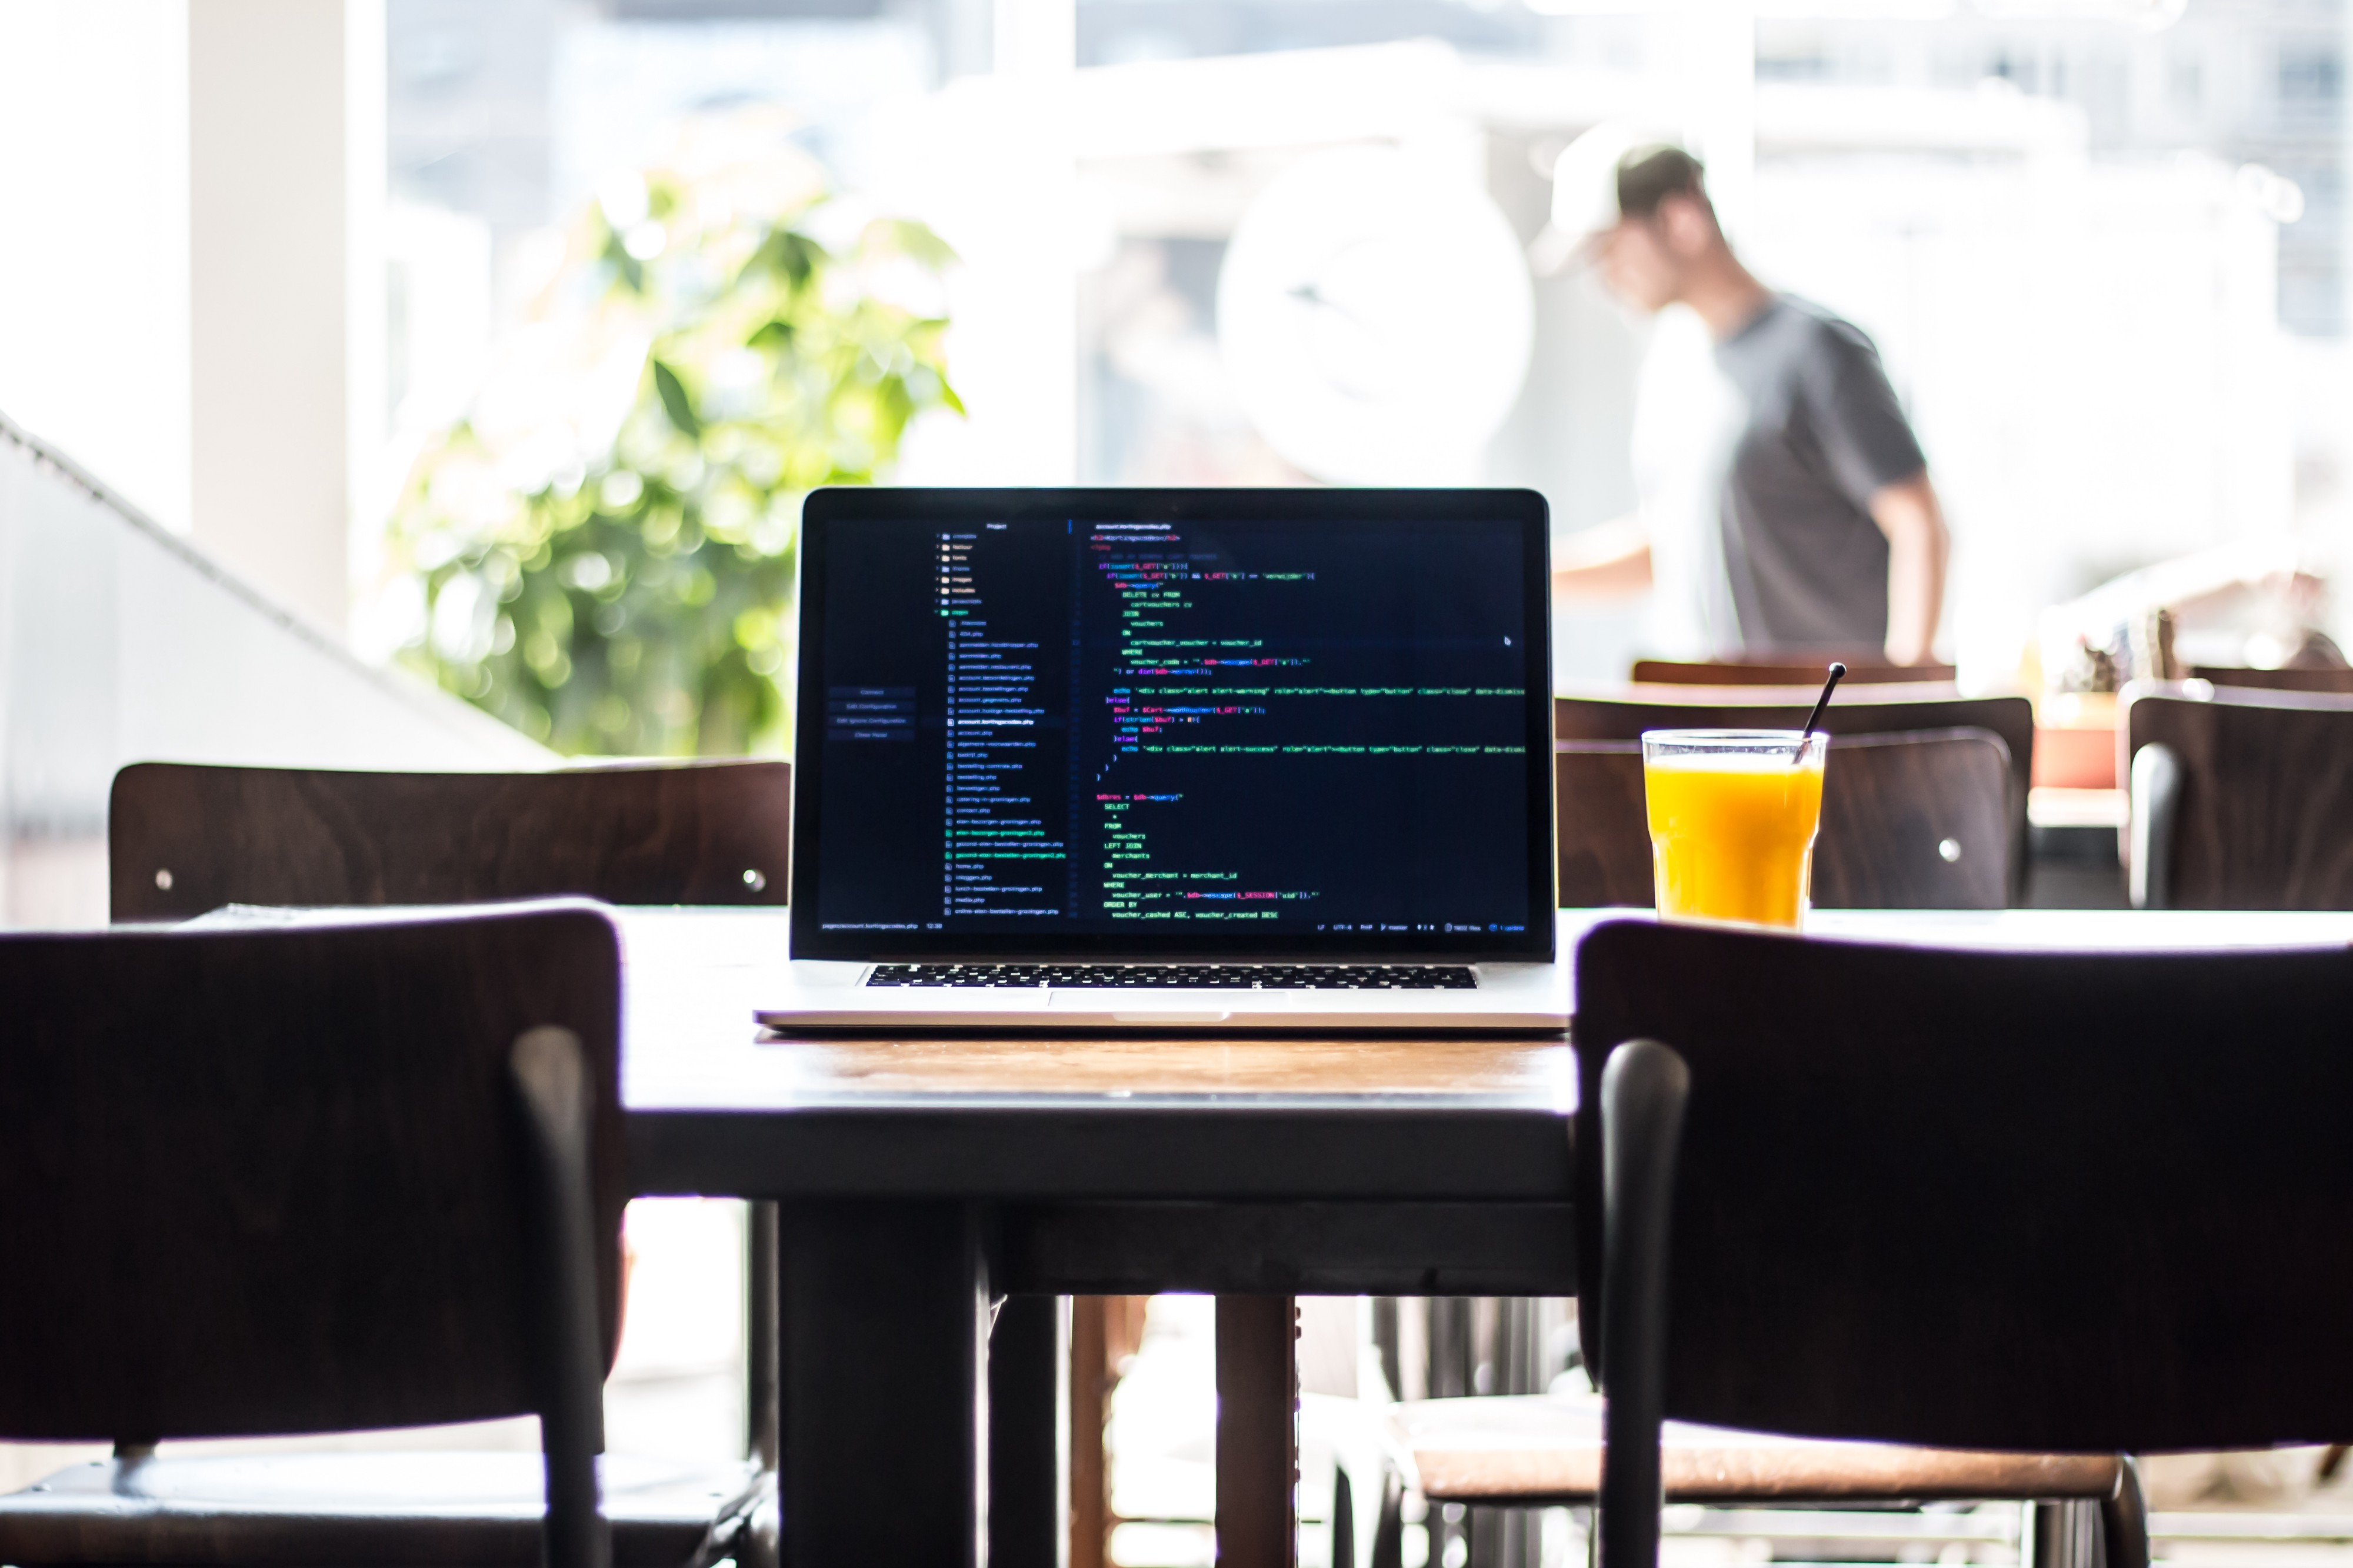 30 Helpful Python Snippets That You Can Learn in 30 Seconds